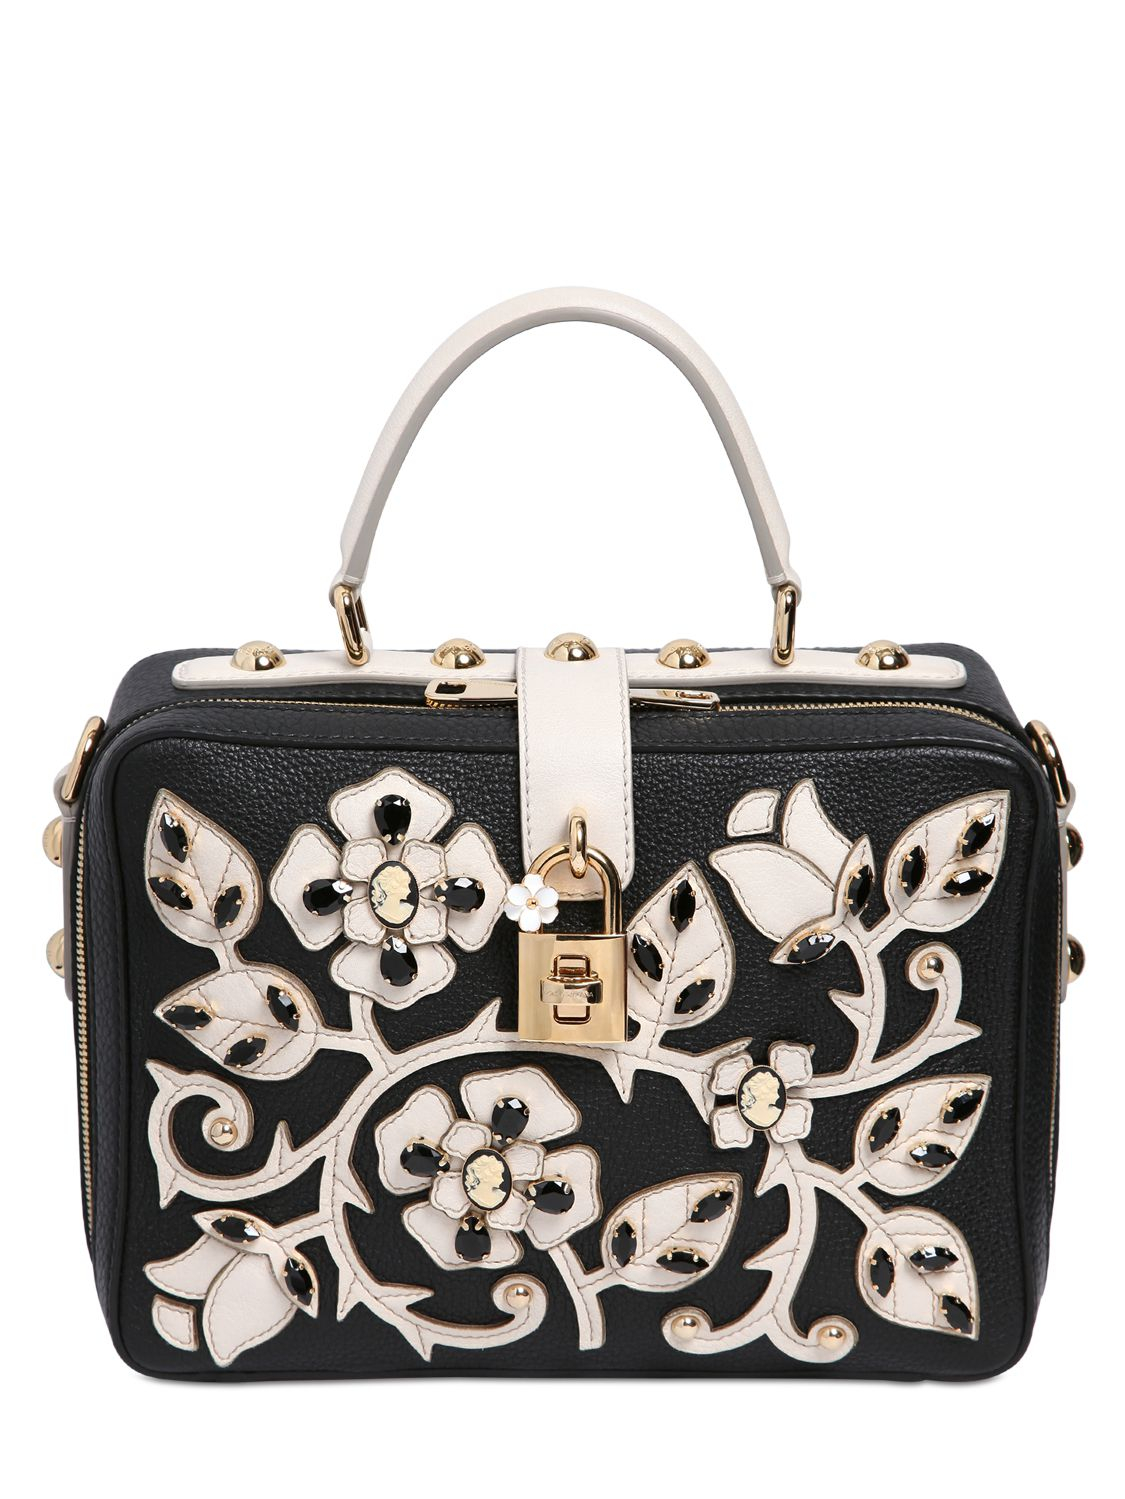 Lyst - Dolce   Gabbana Large Floral Leather Dolce Bag in Black 1b148f45fa74f